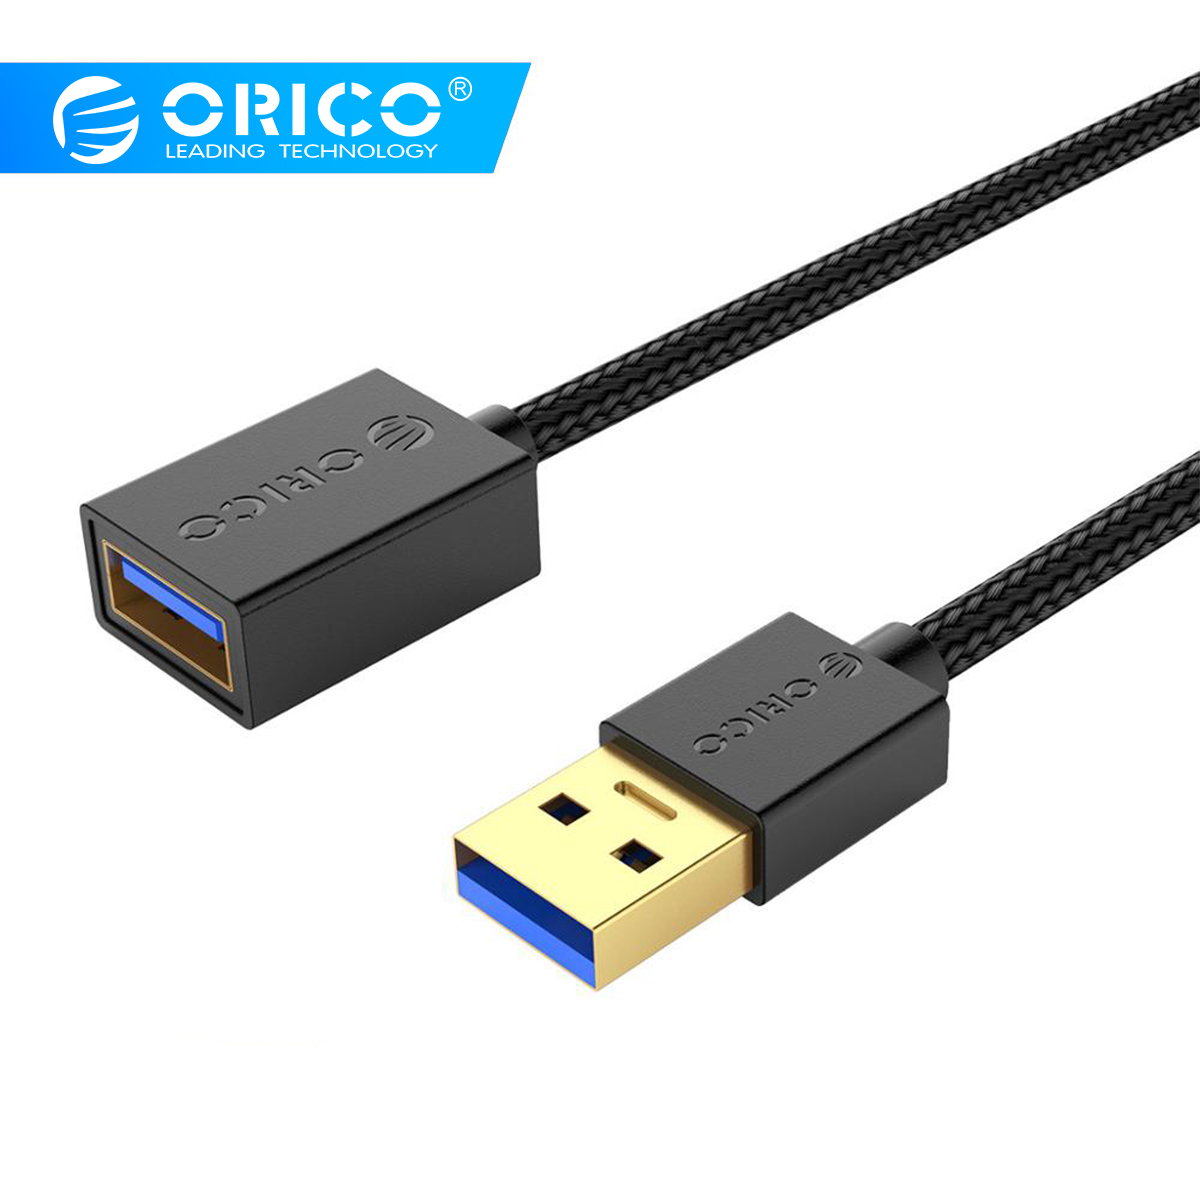 ORICO USB Extension Cable USB 3.0 USB2.0 Cable for Smart TV PS4 Xbox One SSD USB3.0 2.0 Type-A Extender USB Extension Cable image